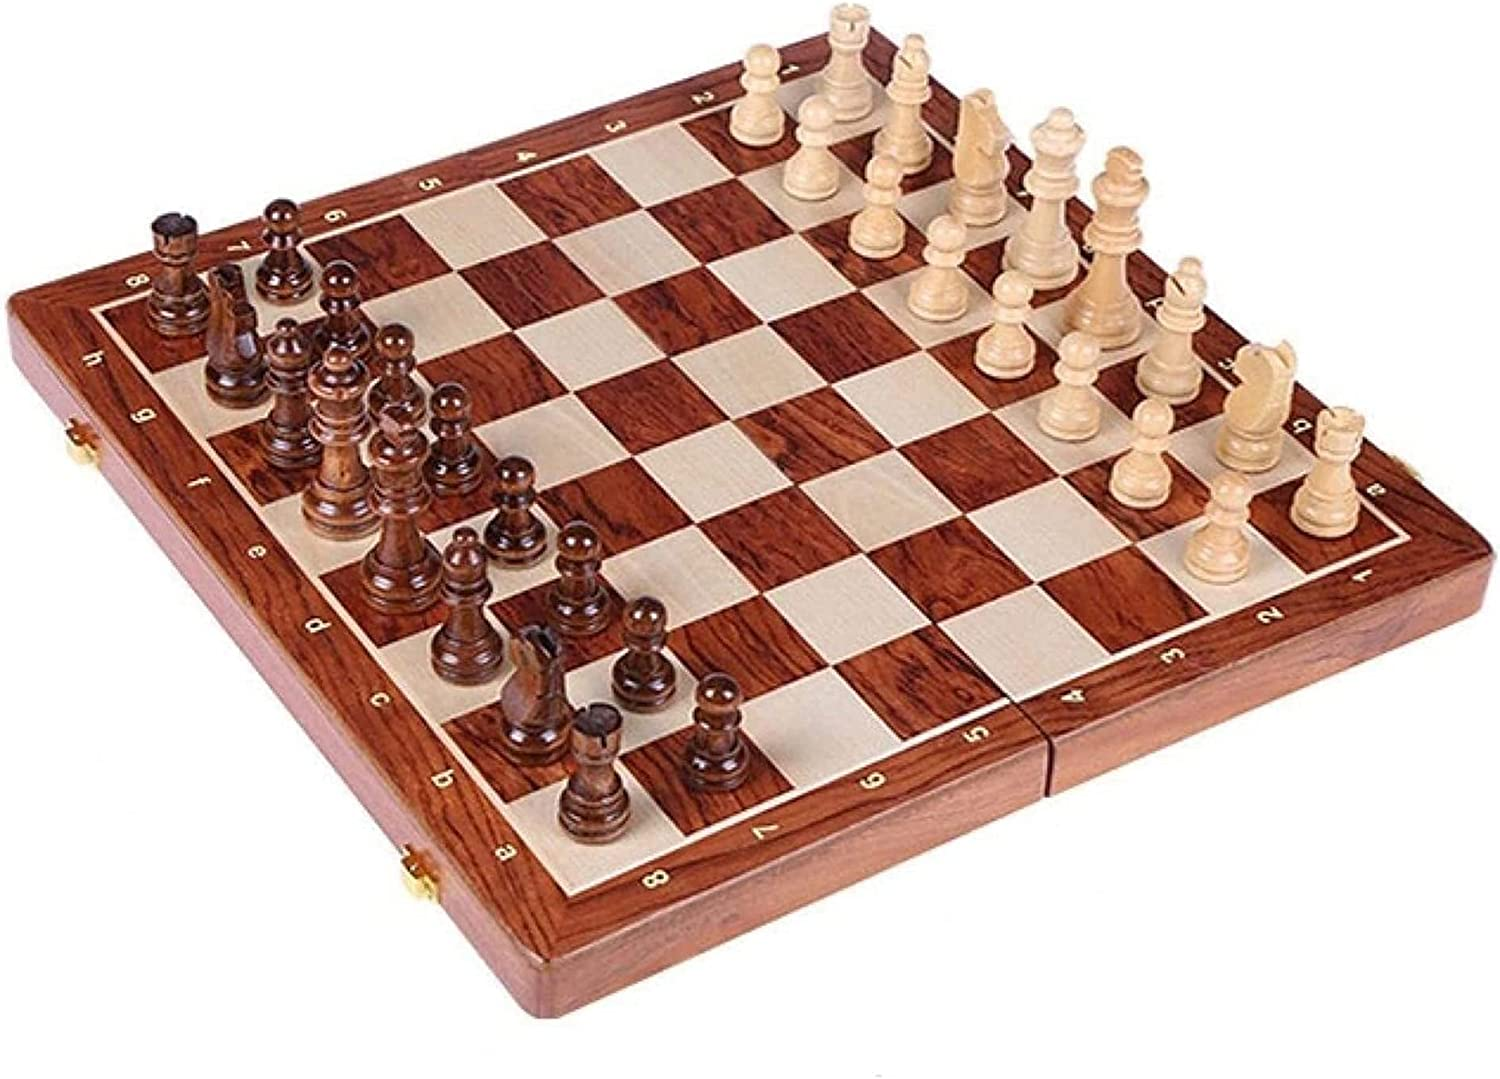 MTCWD Artisanal Wooden Free Shipping New Chess Portable W Foldable Set 5 ☆ very popular